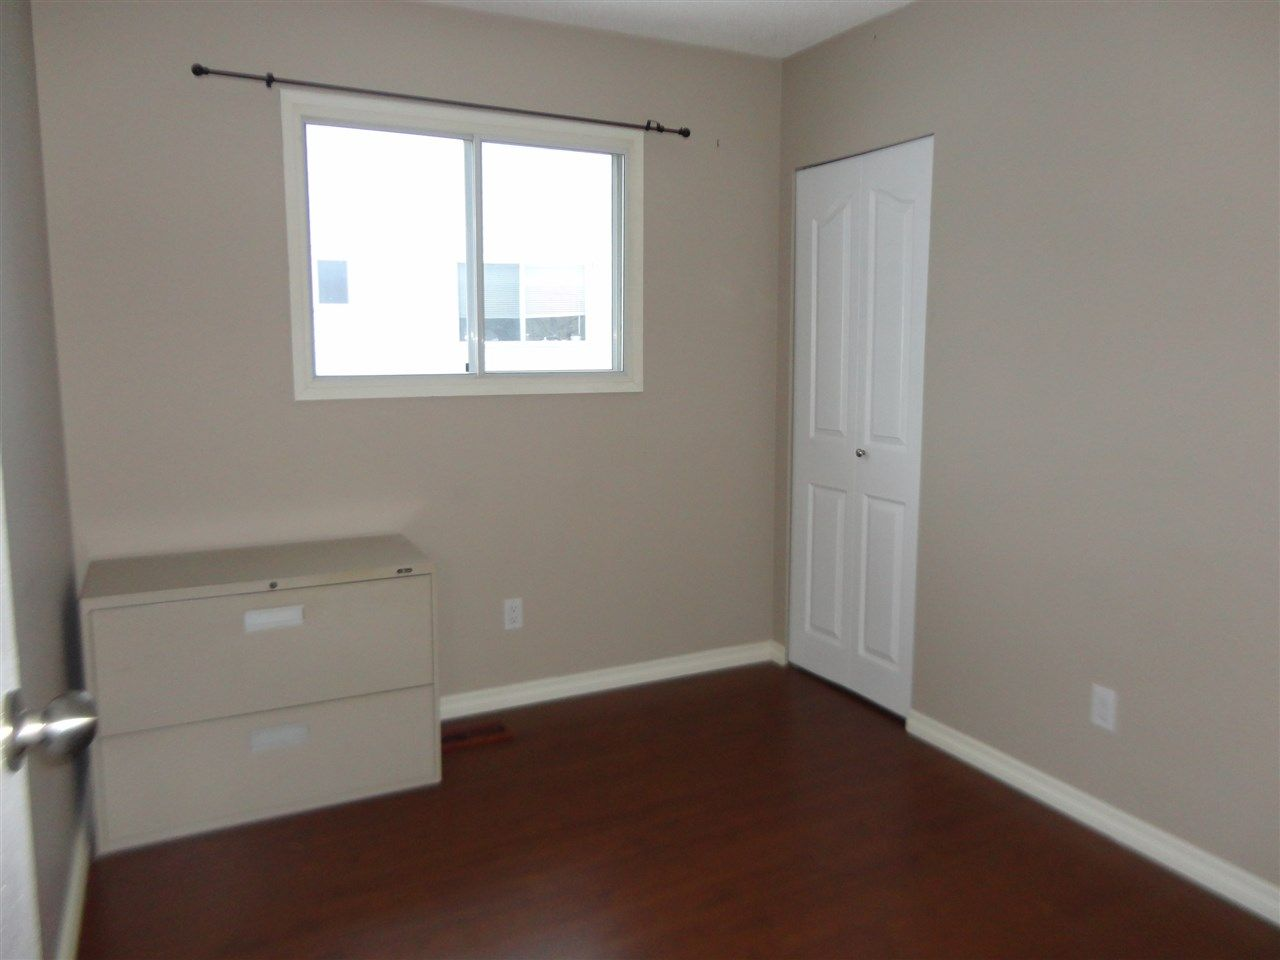 Photo 8: Photos: 7808 LOYOLA Drive in Prince George: Lower College 1/2 Duplex for sale (PG City South (Zone 74))  : MLS®# R2493738